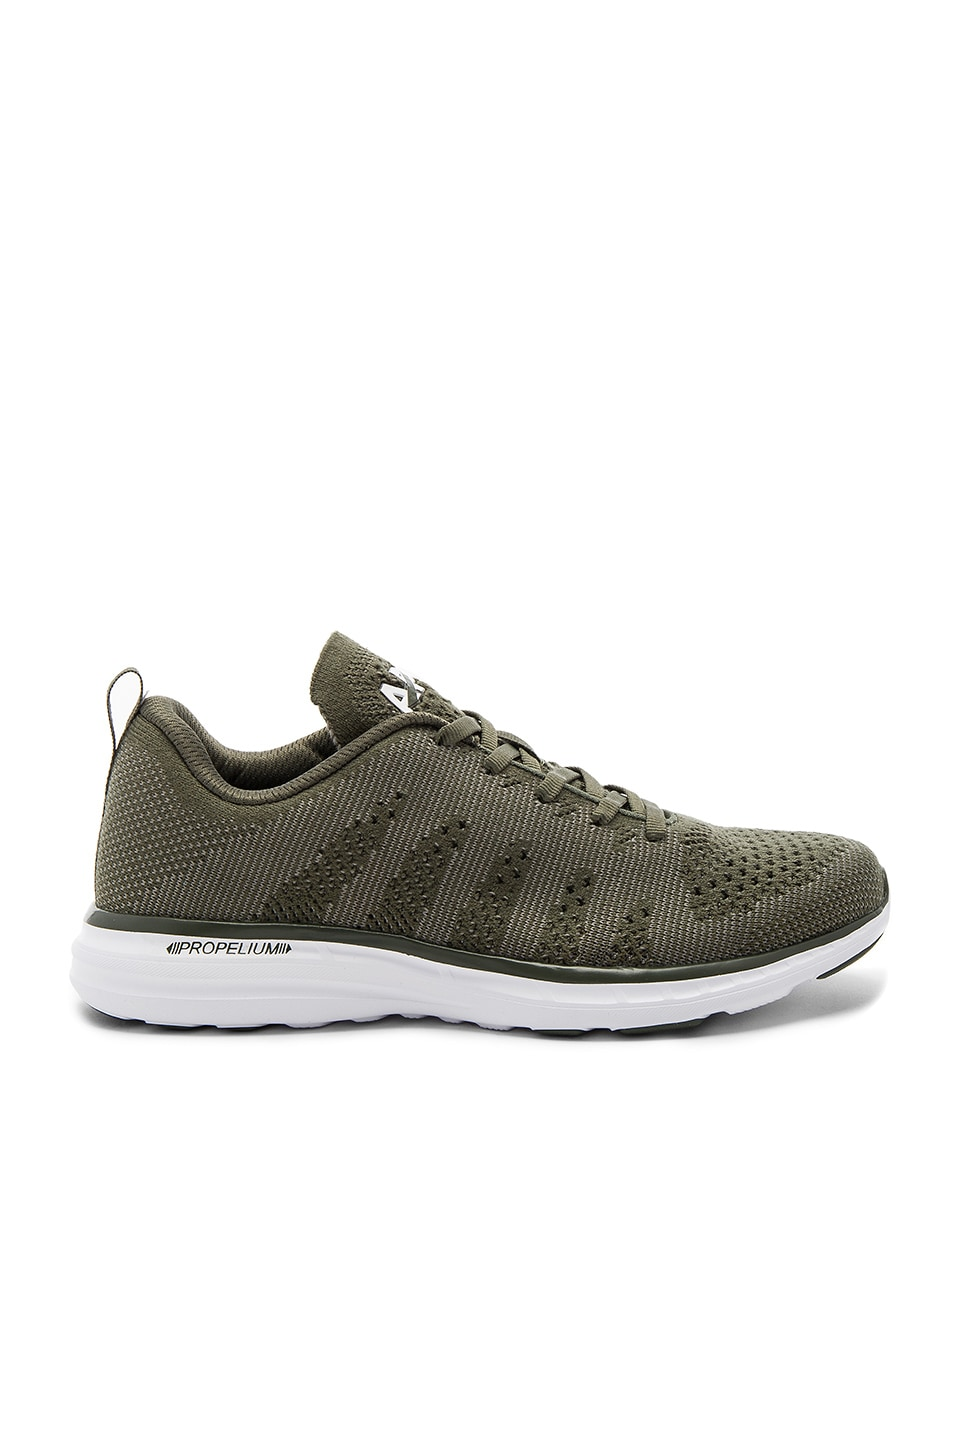 Athletic Propulsion Labs: APL Techloom Pro Cashmere Sneaker in Fatigue Cashmere